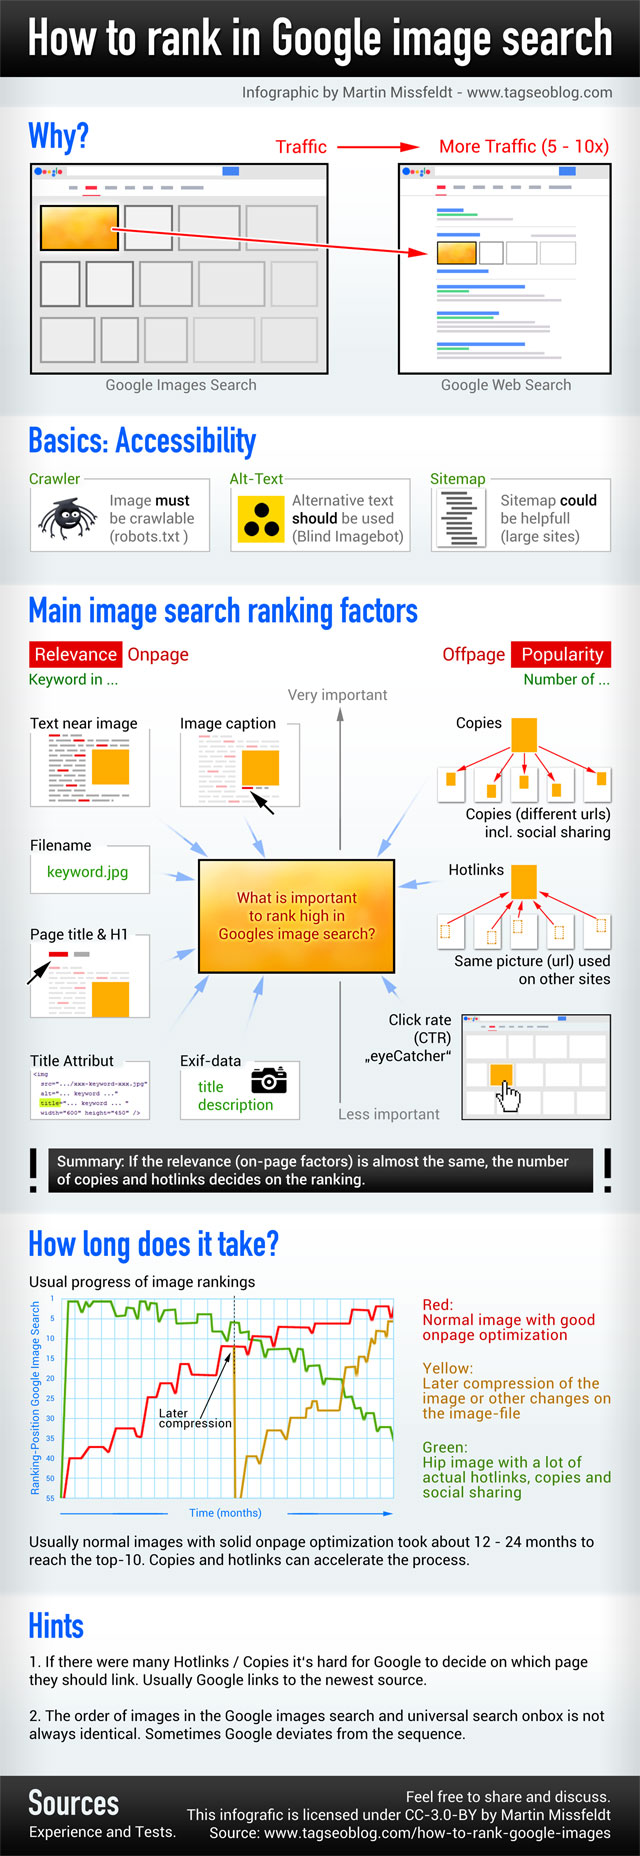 Google images search ranking factors (Infographic by Martin Missfeldt)